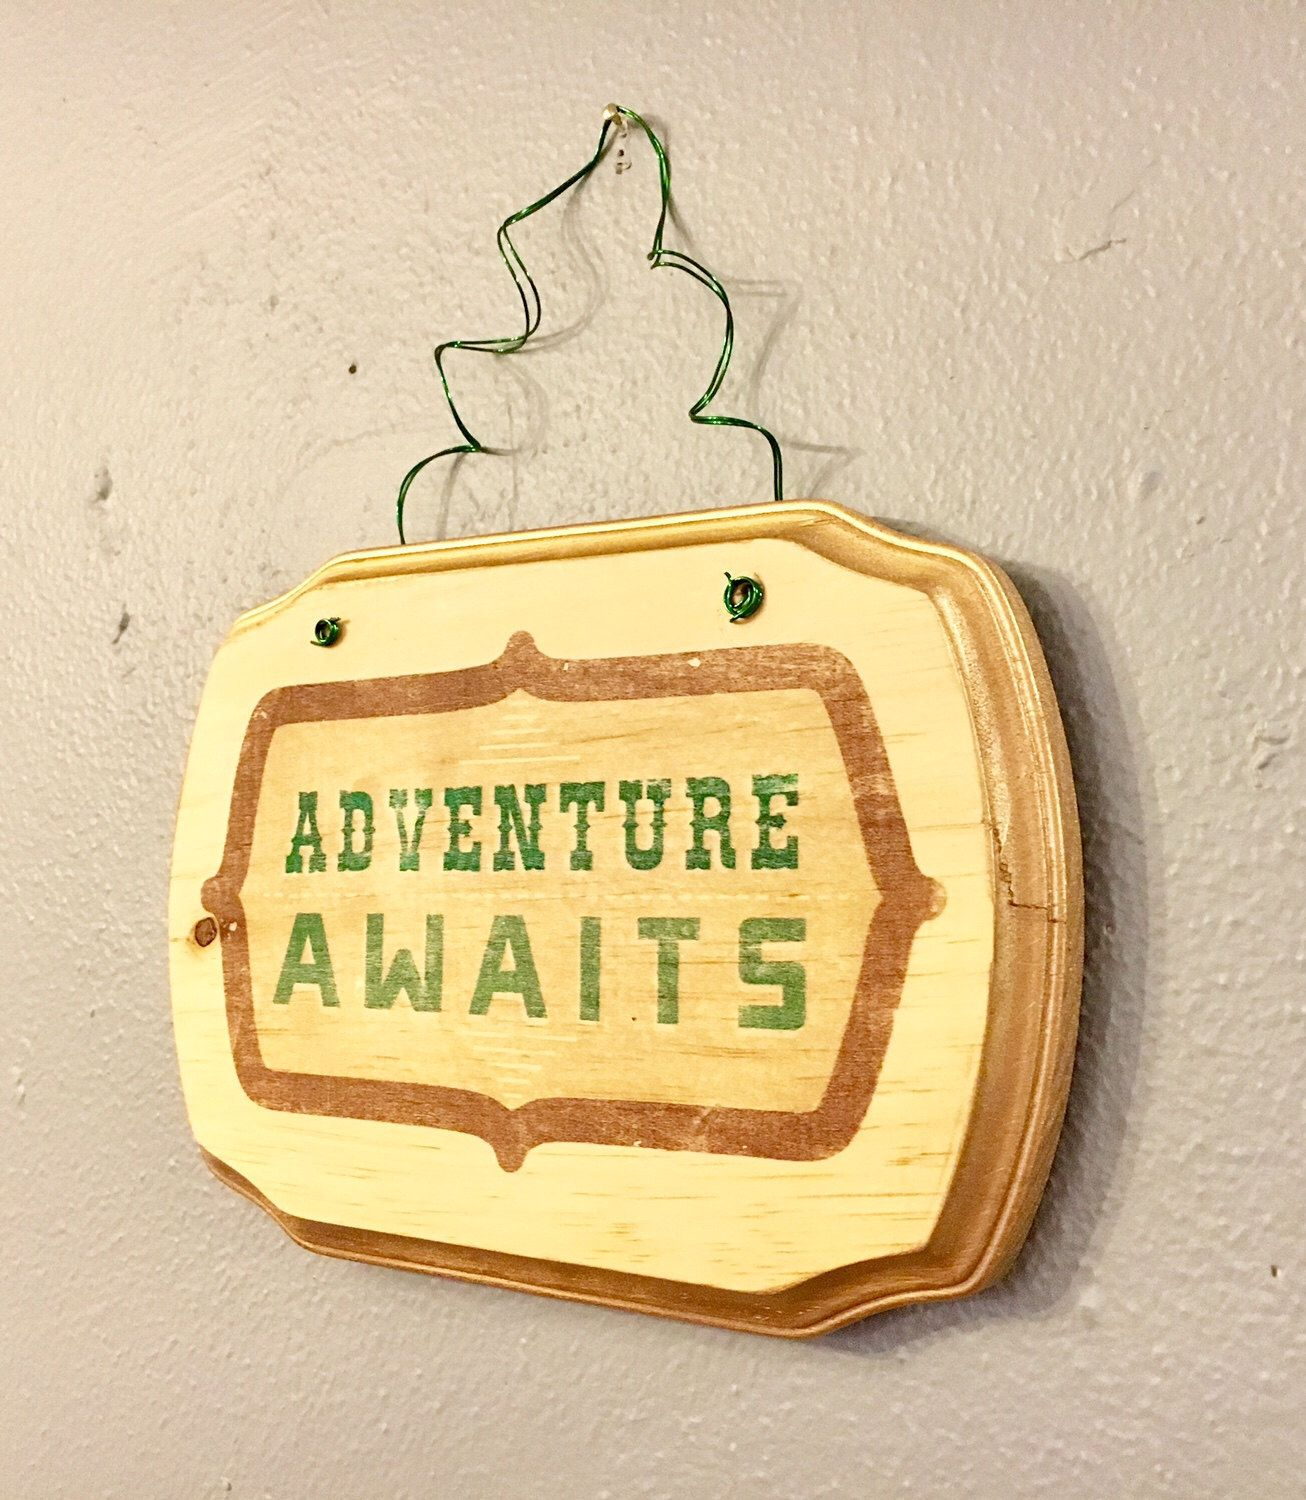 Rustic Home Decor / Wall Decor / Wooden Sign Sayings / Home Decor ...